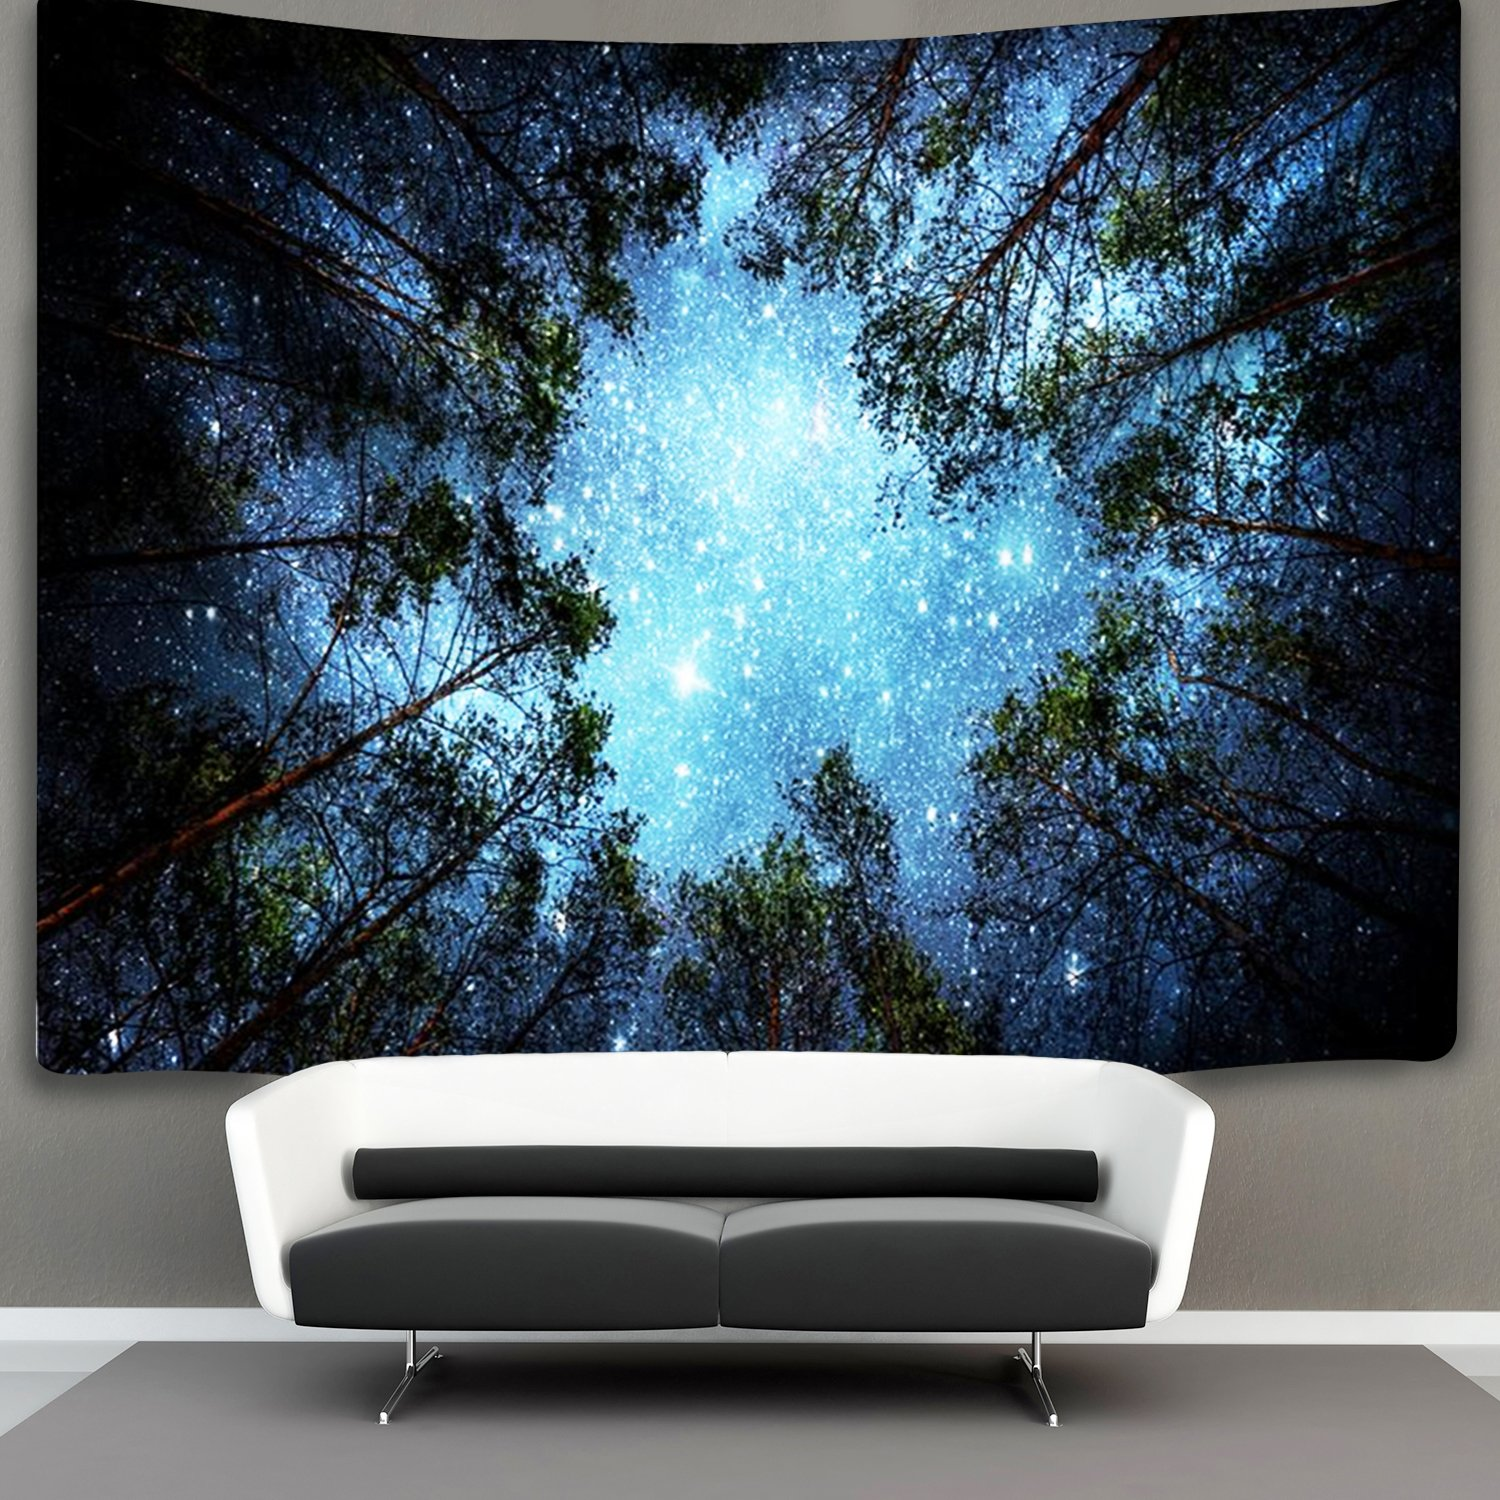 Forest Starry Tapestry Wall Hanging 3D Printing Forest Tapestry Galaxy Tapestry Forest Milky Way Tapestry Tree Tapestry Night Sky Tapestry Wall Tapestry for Dorm Living Room Bedroom (L, 4#forest star)